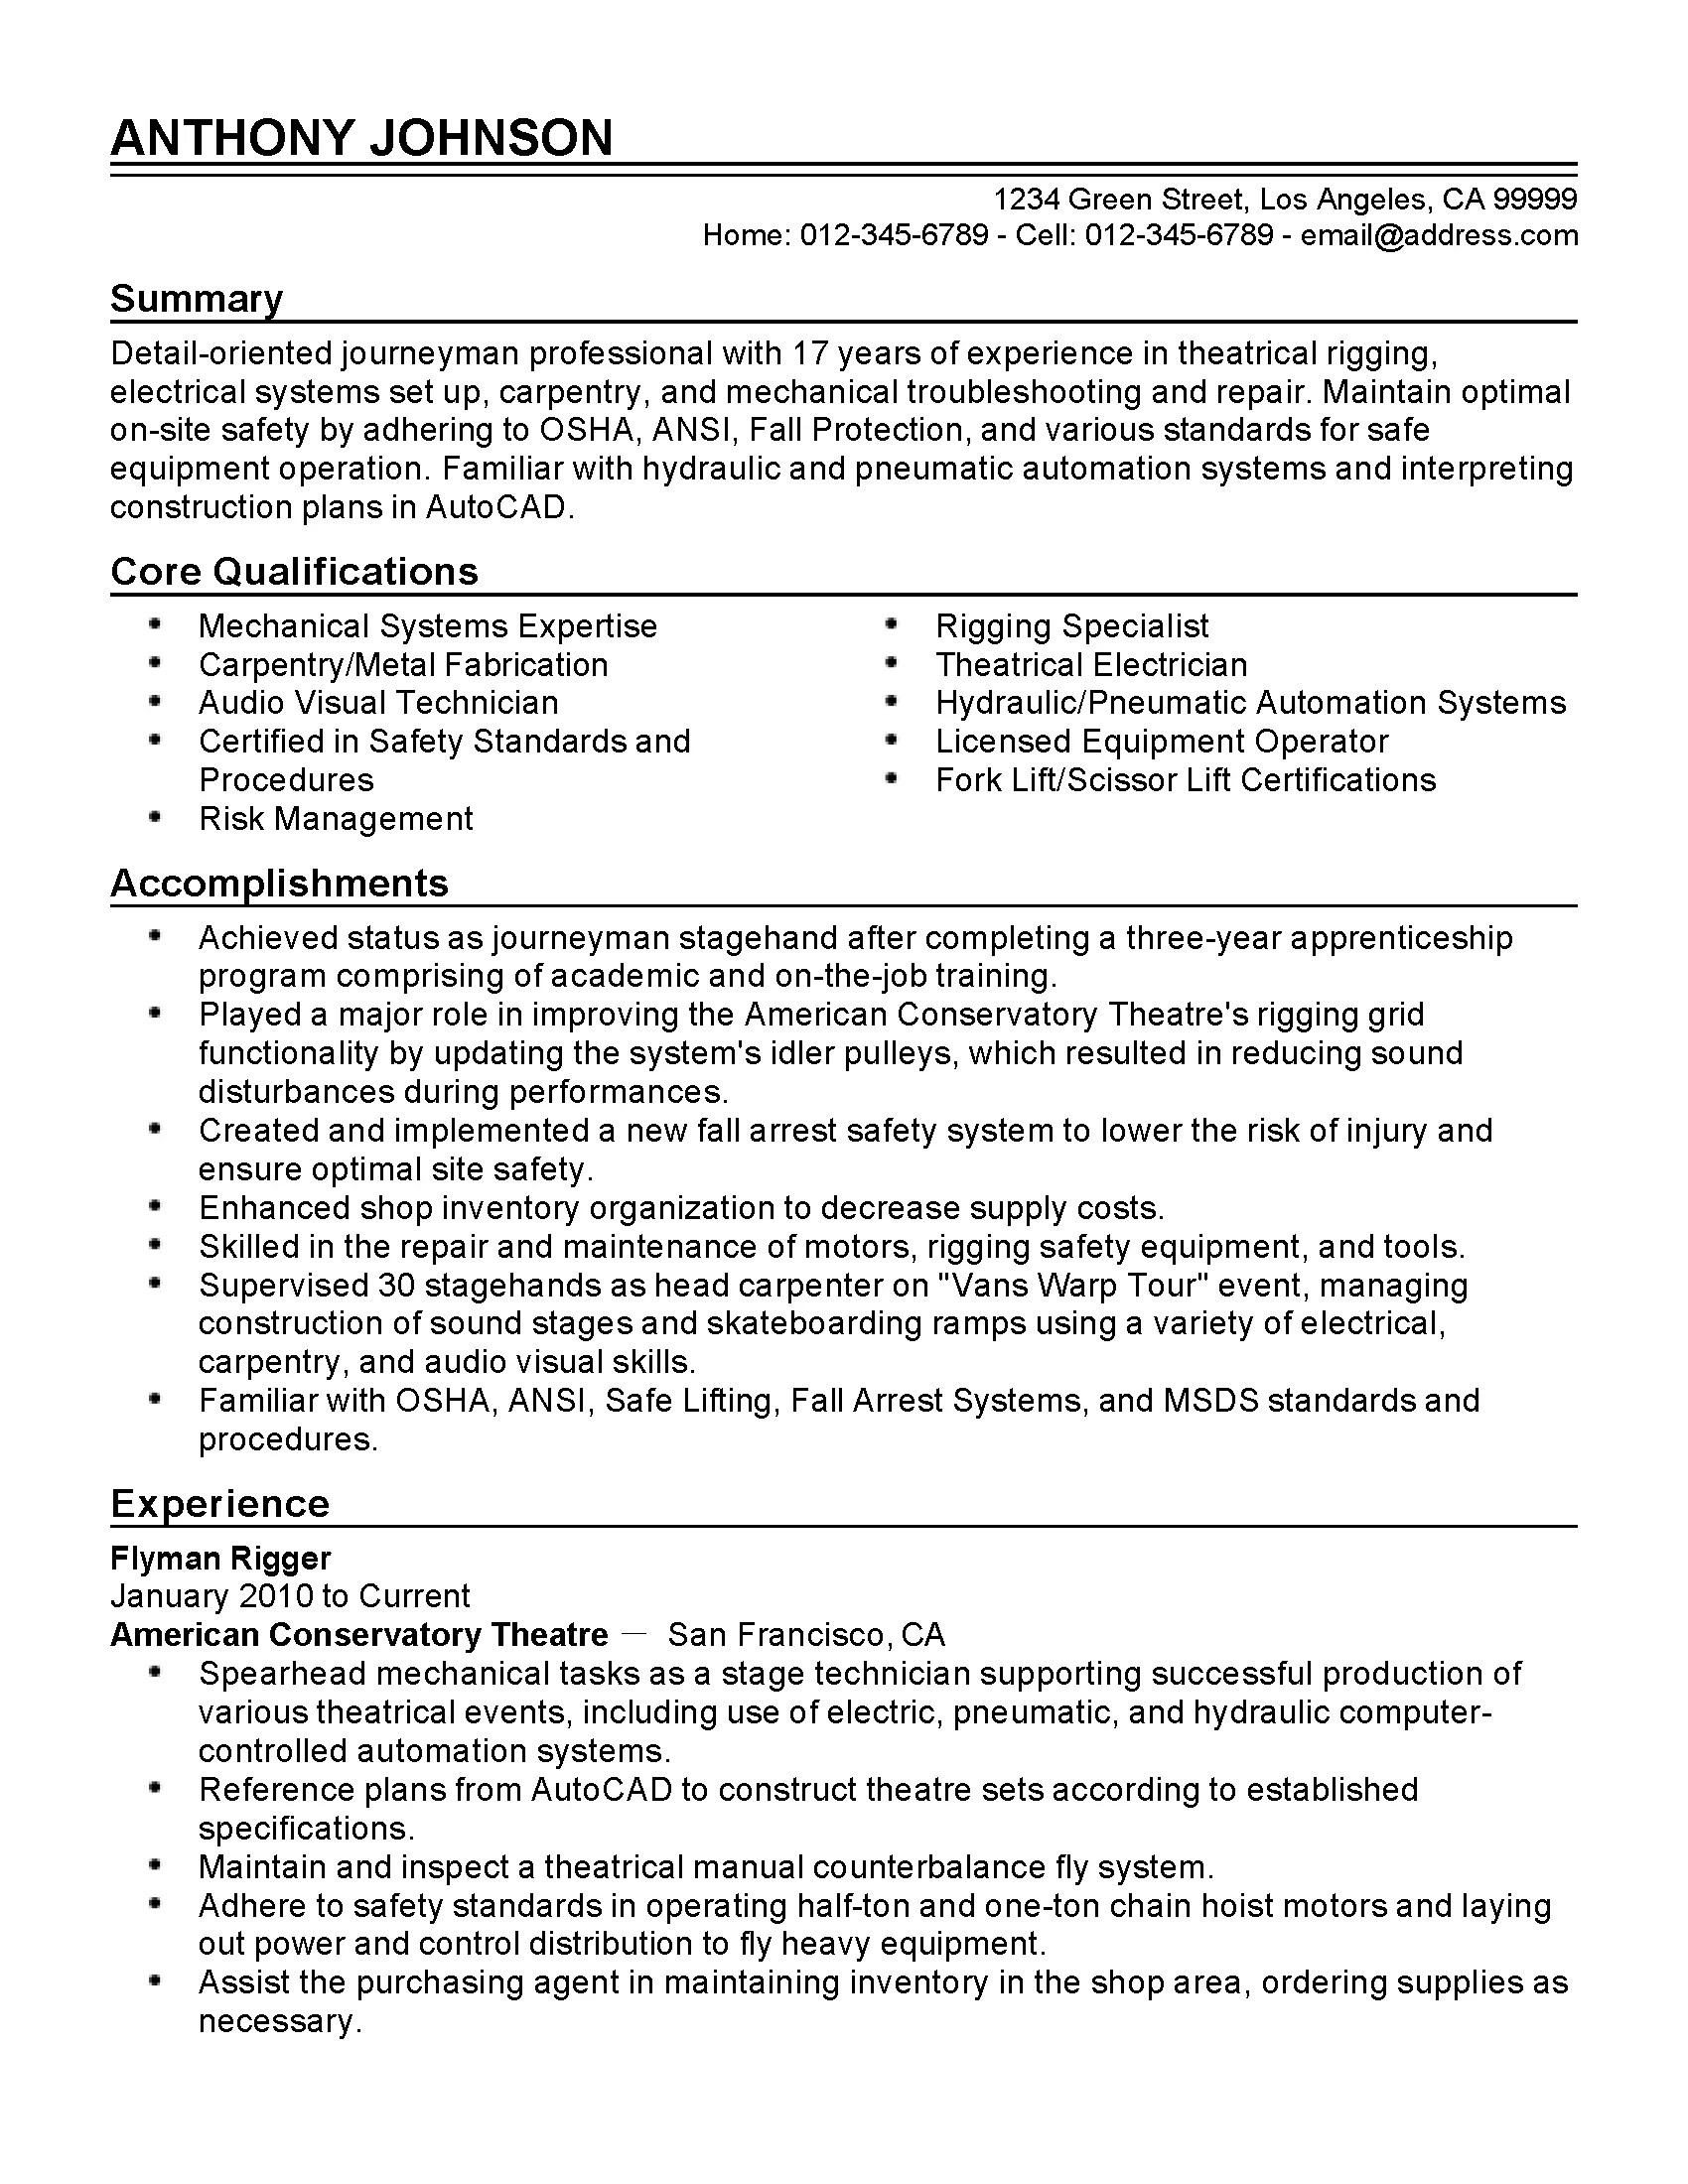 Copier Technician Resume Professional Flyman Rigger Templates To Showcase Your